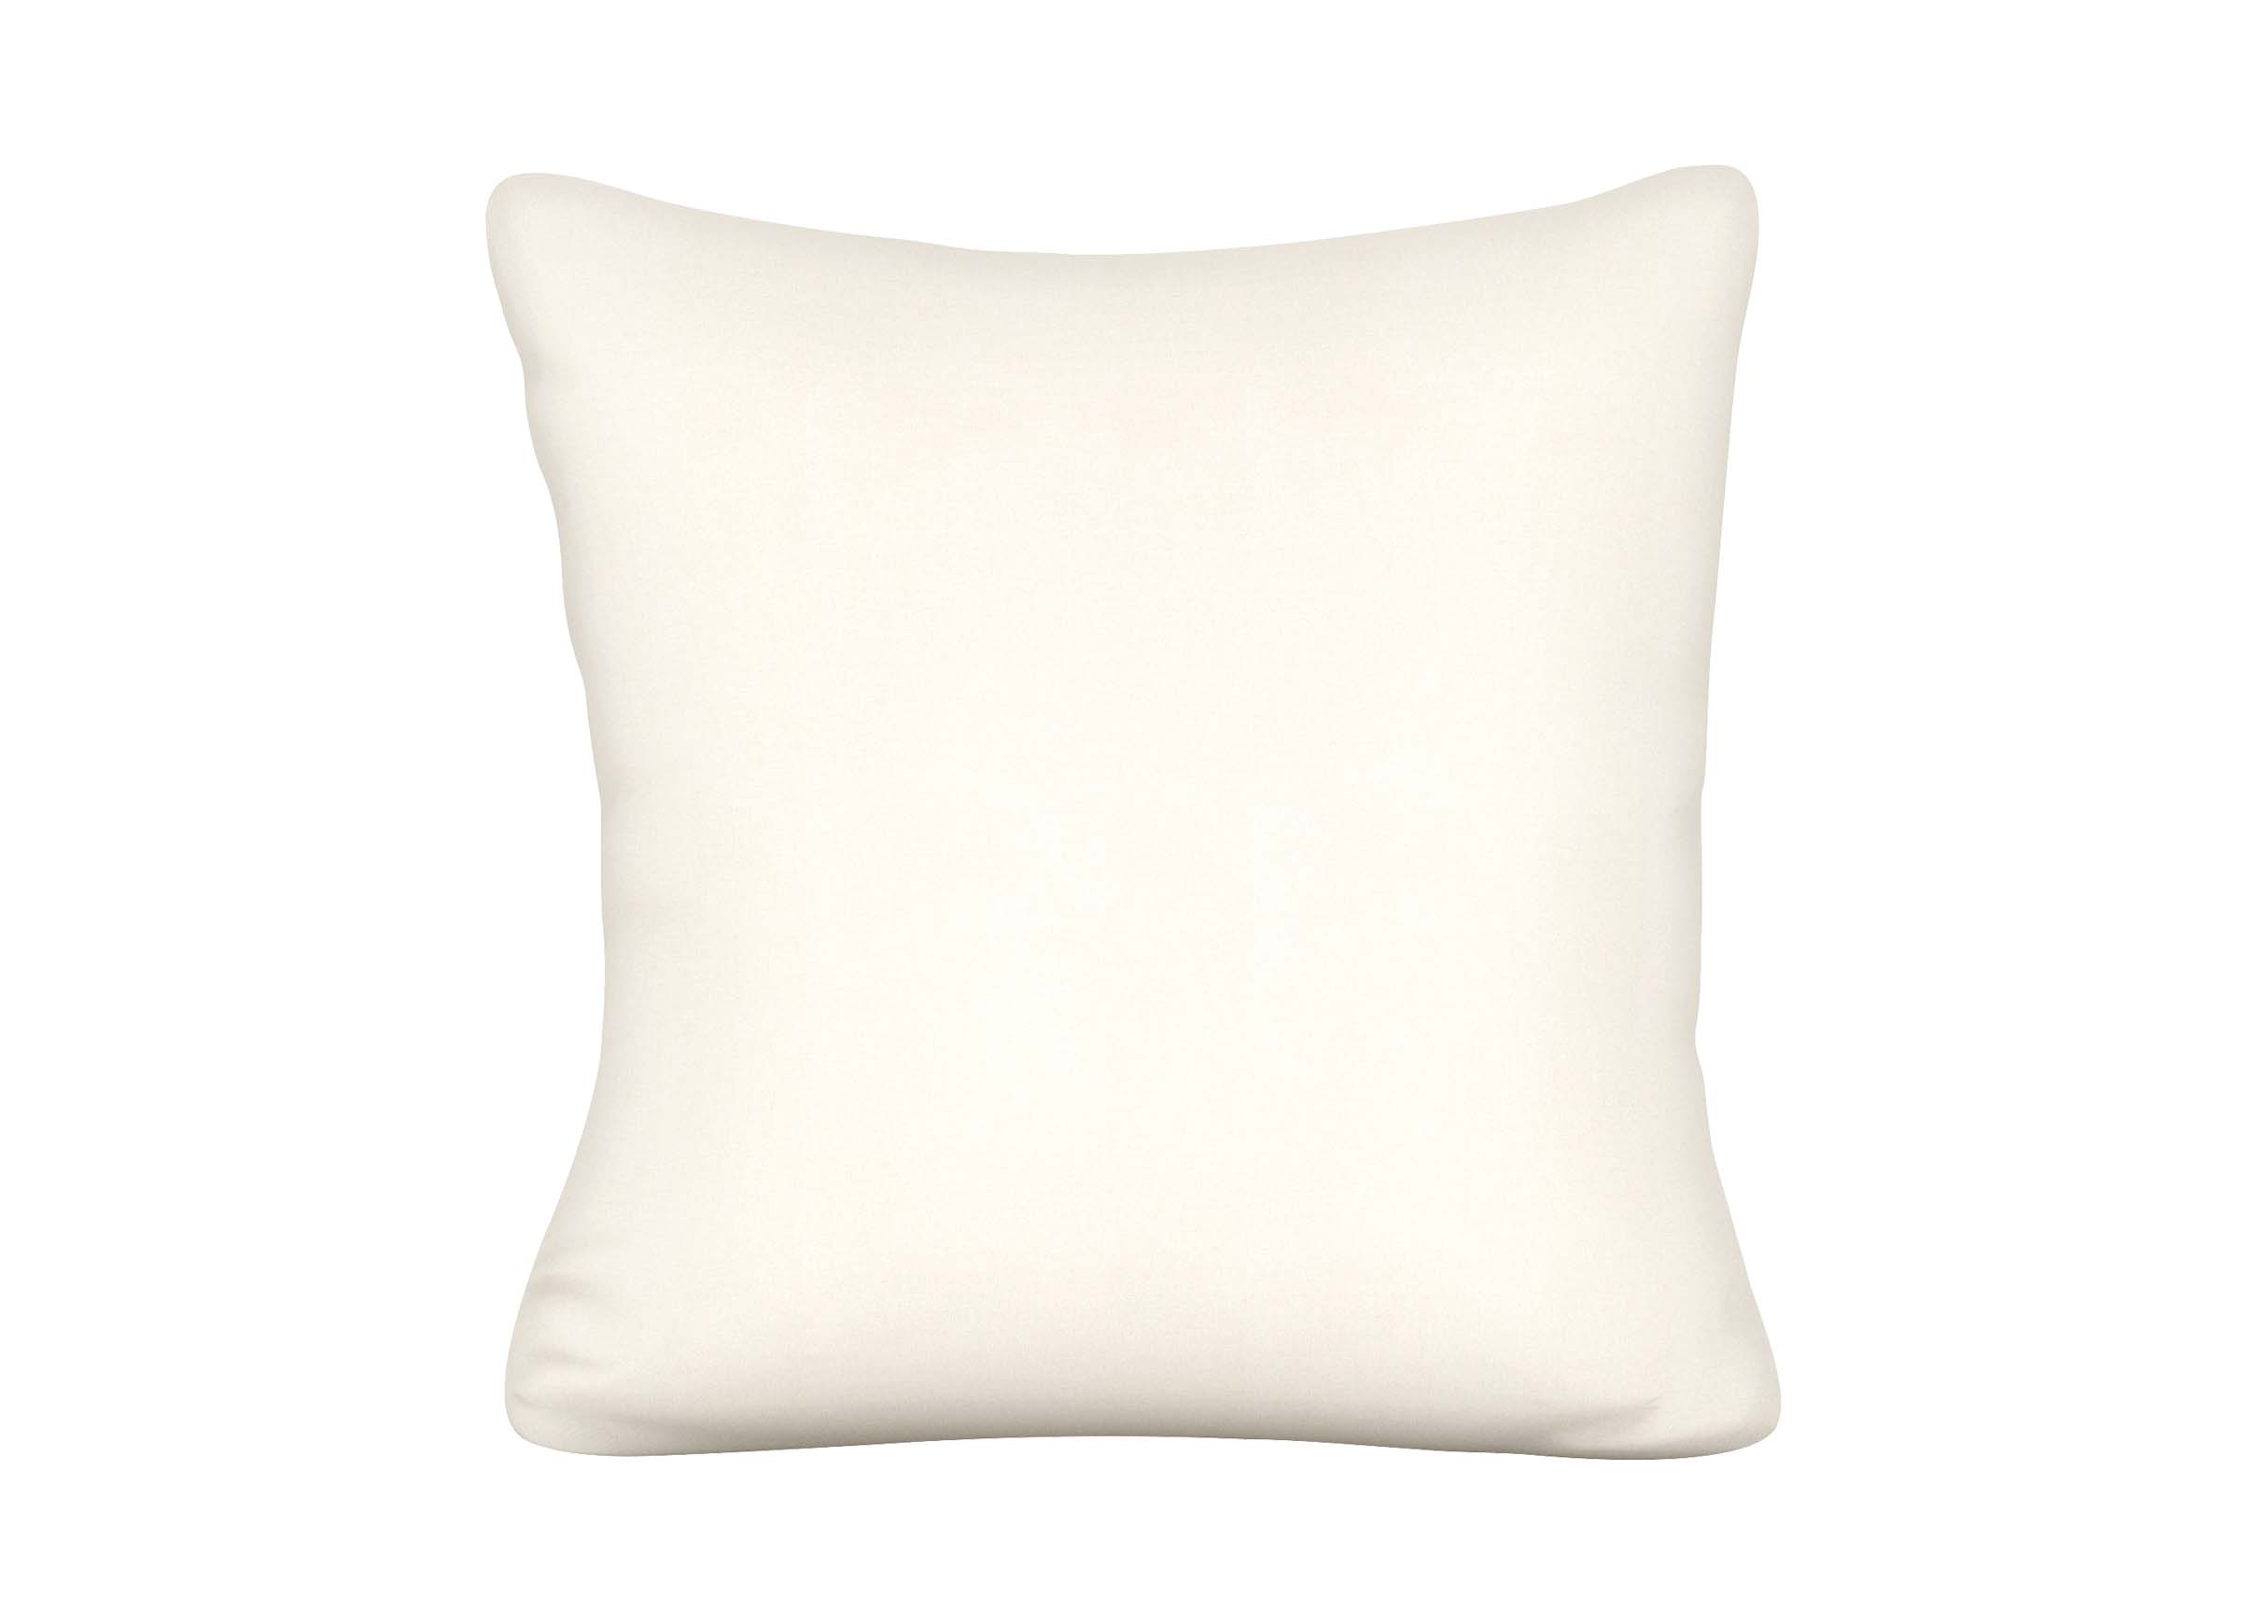 Kean White 20x20 Outdoor Throw Pillows